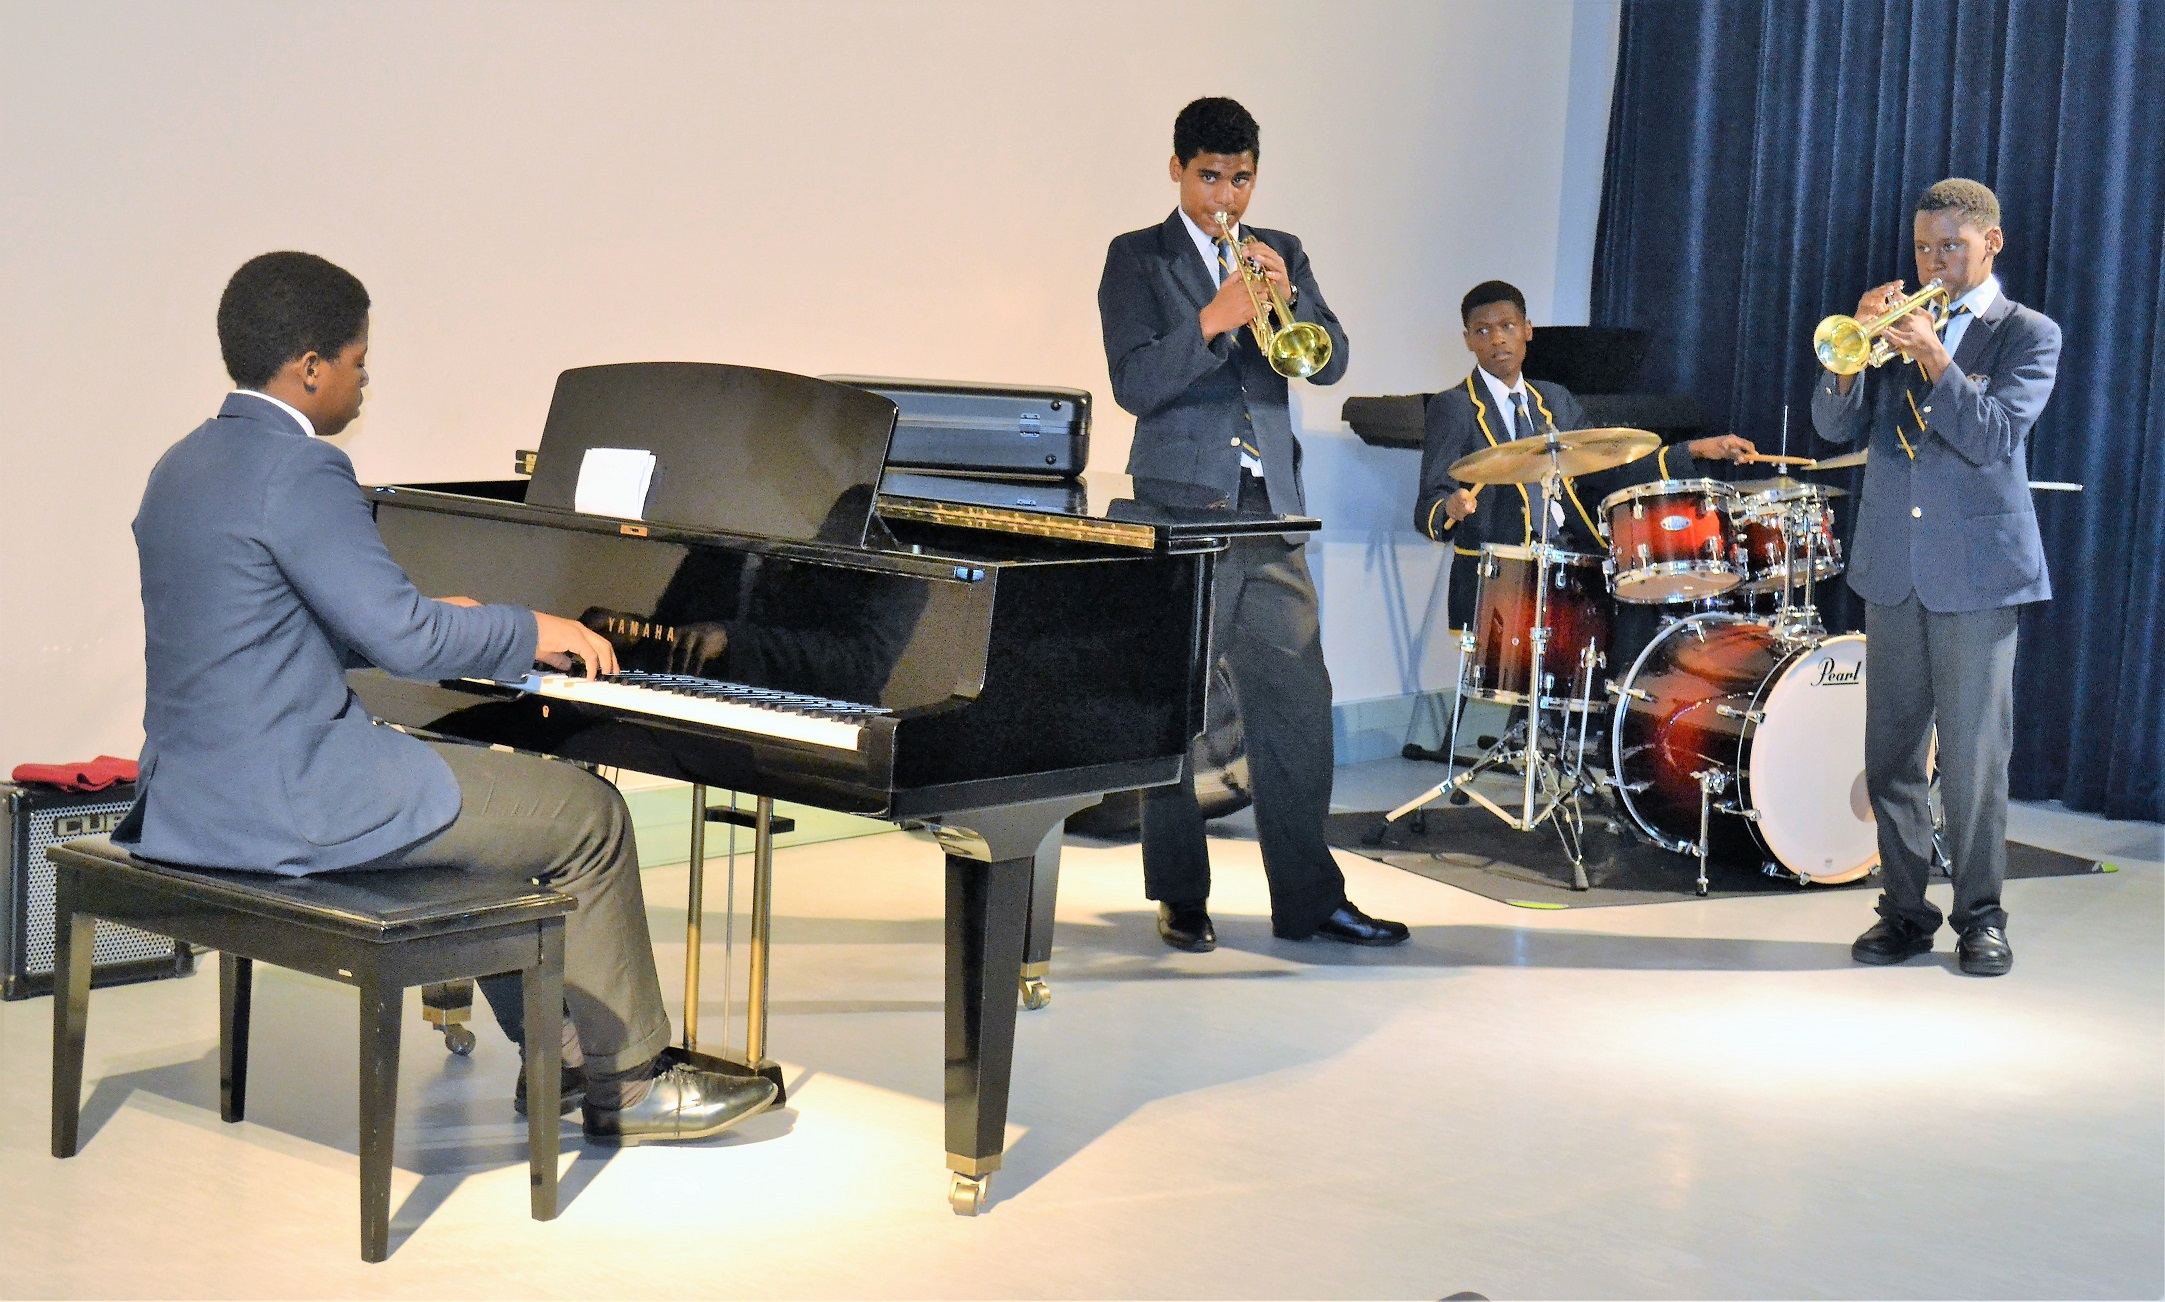 Levi Pillay, Ntokozo Nsibande and Sam Sibisi (drums) and Mhlengi Ngwenya (piano) performing at the first Lunch Time Concert in the Chris Seabrooke Music Centre